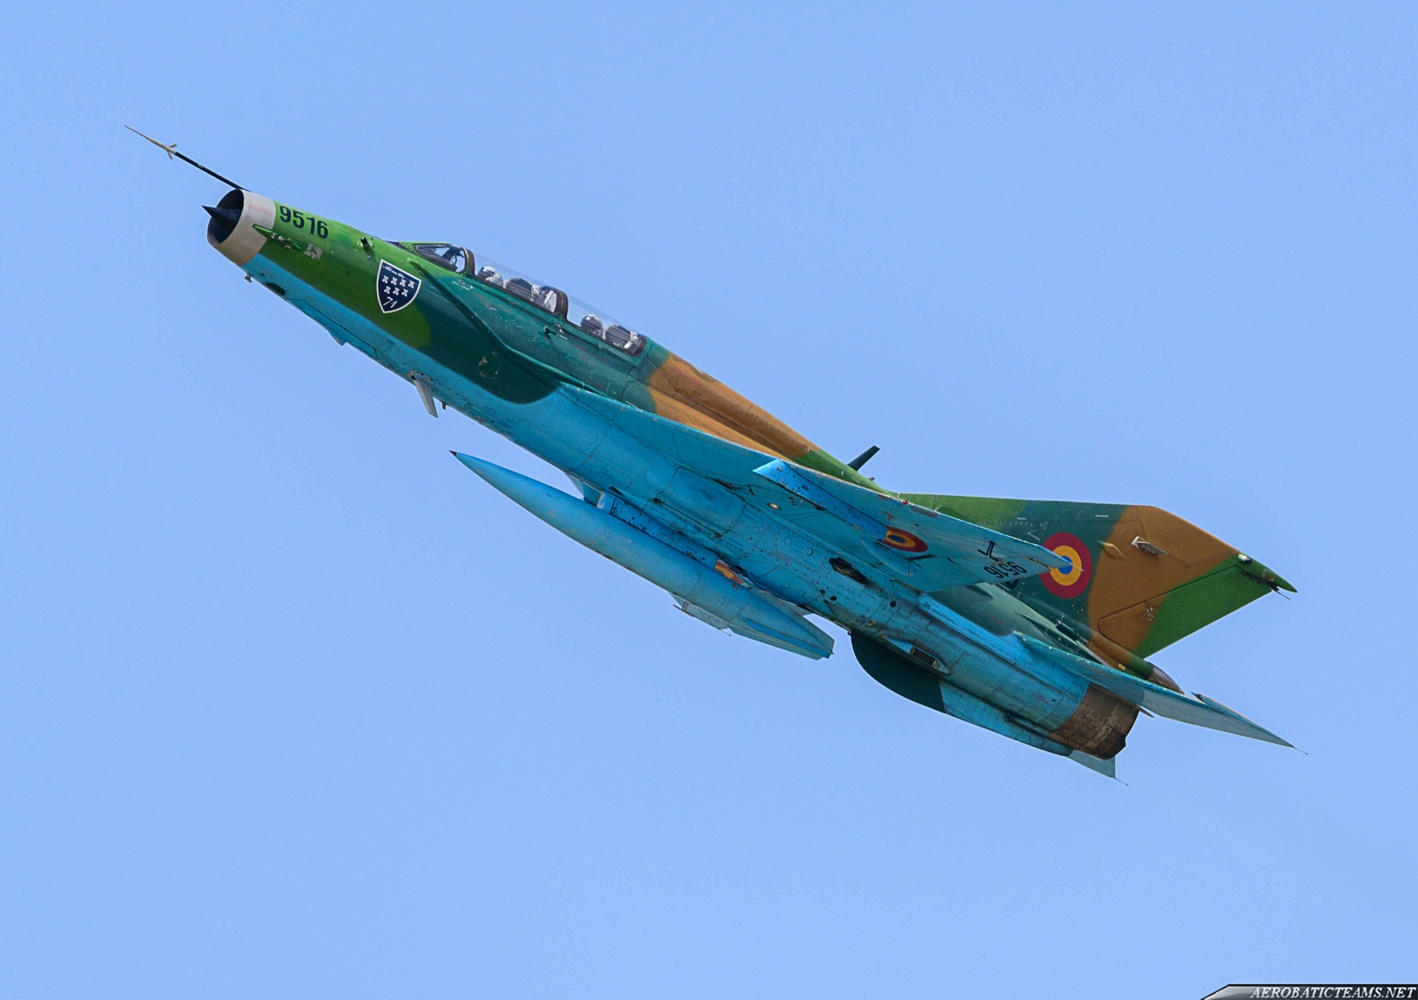 Romanian Air Force MiG-21